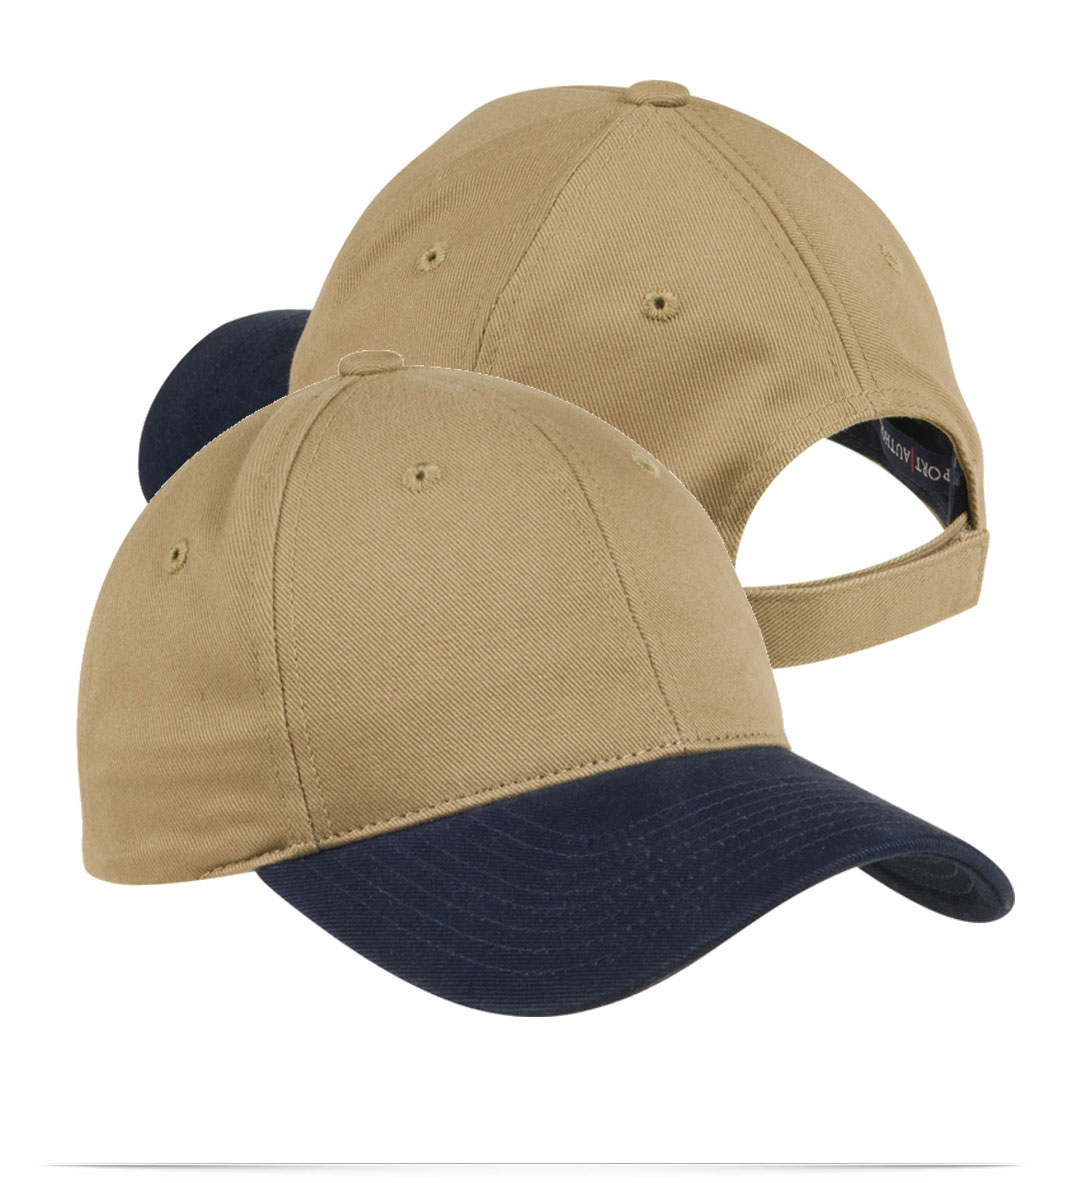 Customize Twill Cap with Contrasting Underbill